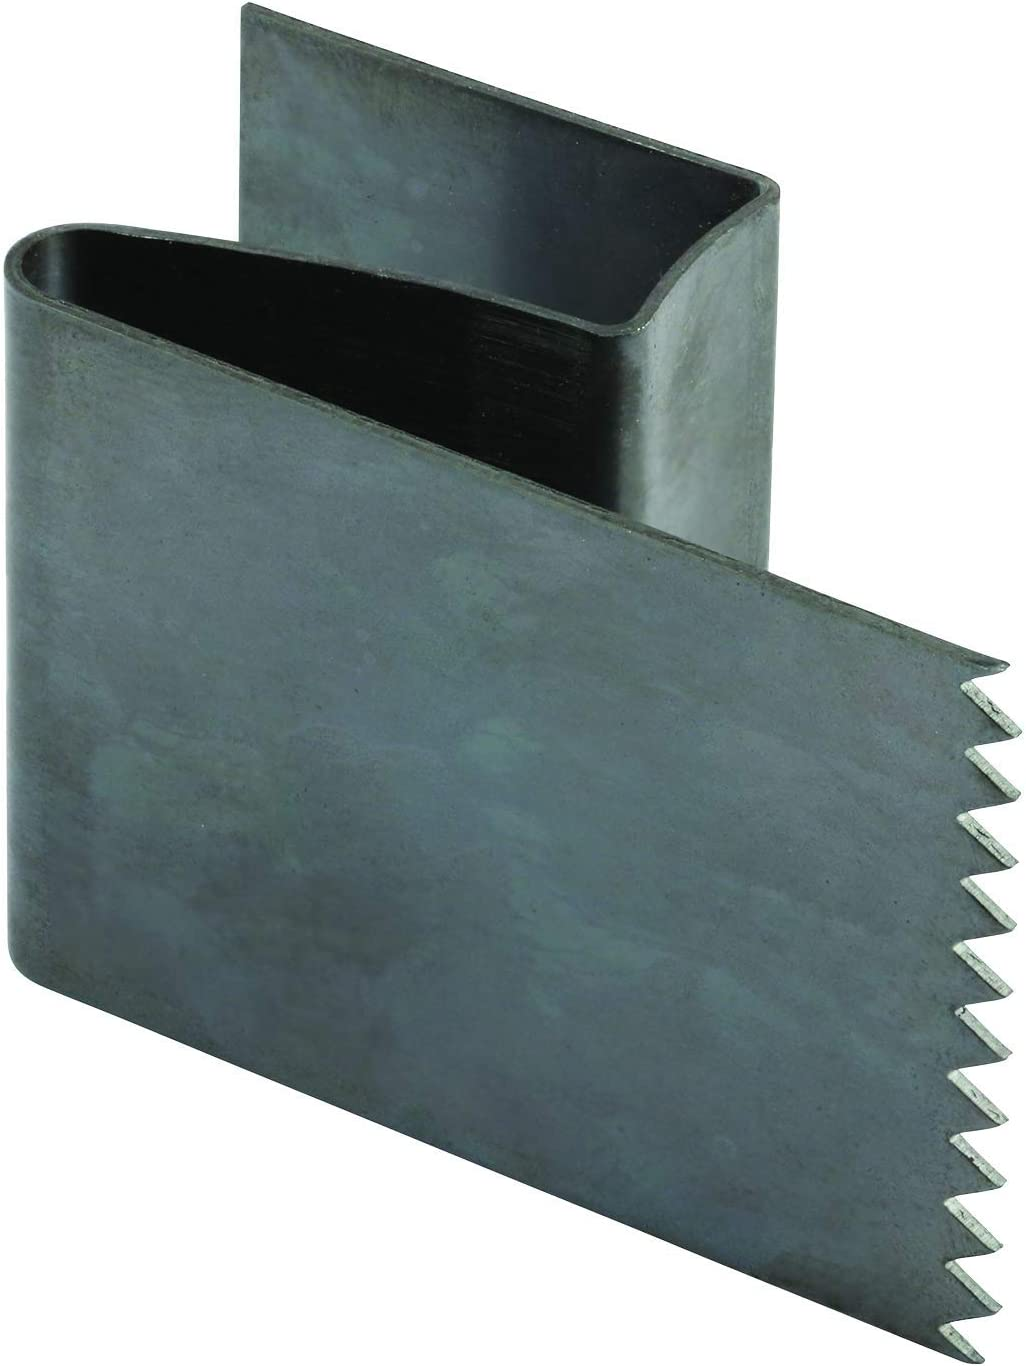 PRIME-LINE Hurricane Board-Up Clips, Fits 1/2 in. Thick Plywood, Stamped Steel, Unfinished, for Brick, Wood & Stucco, Pack of 50 (MP5099)